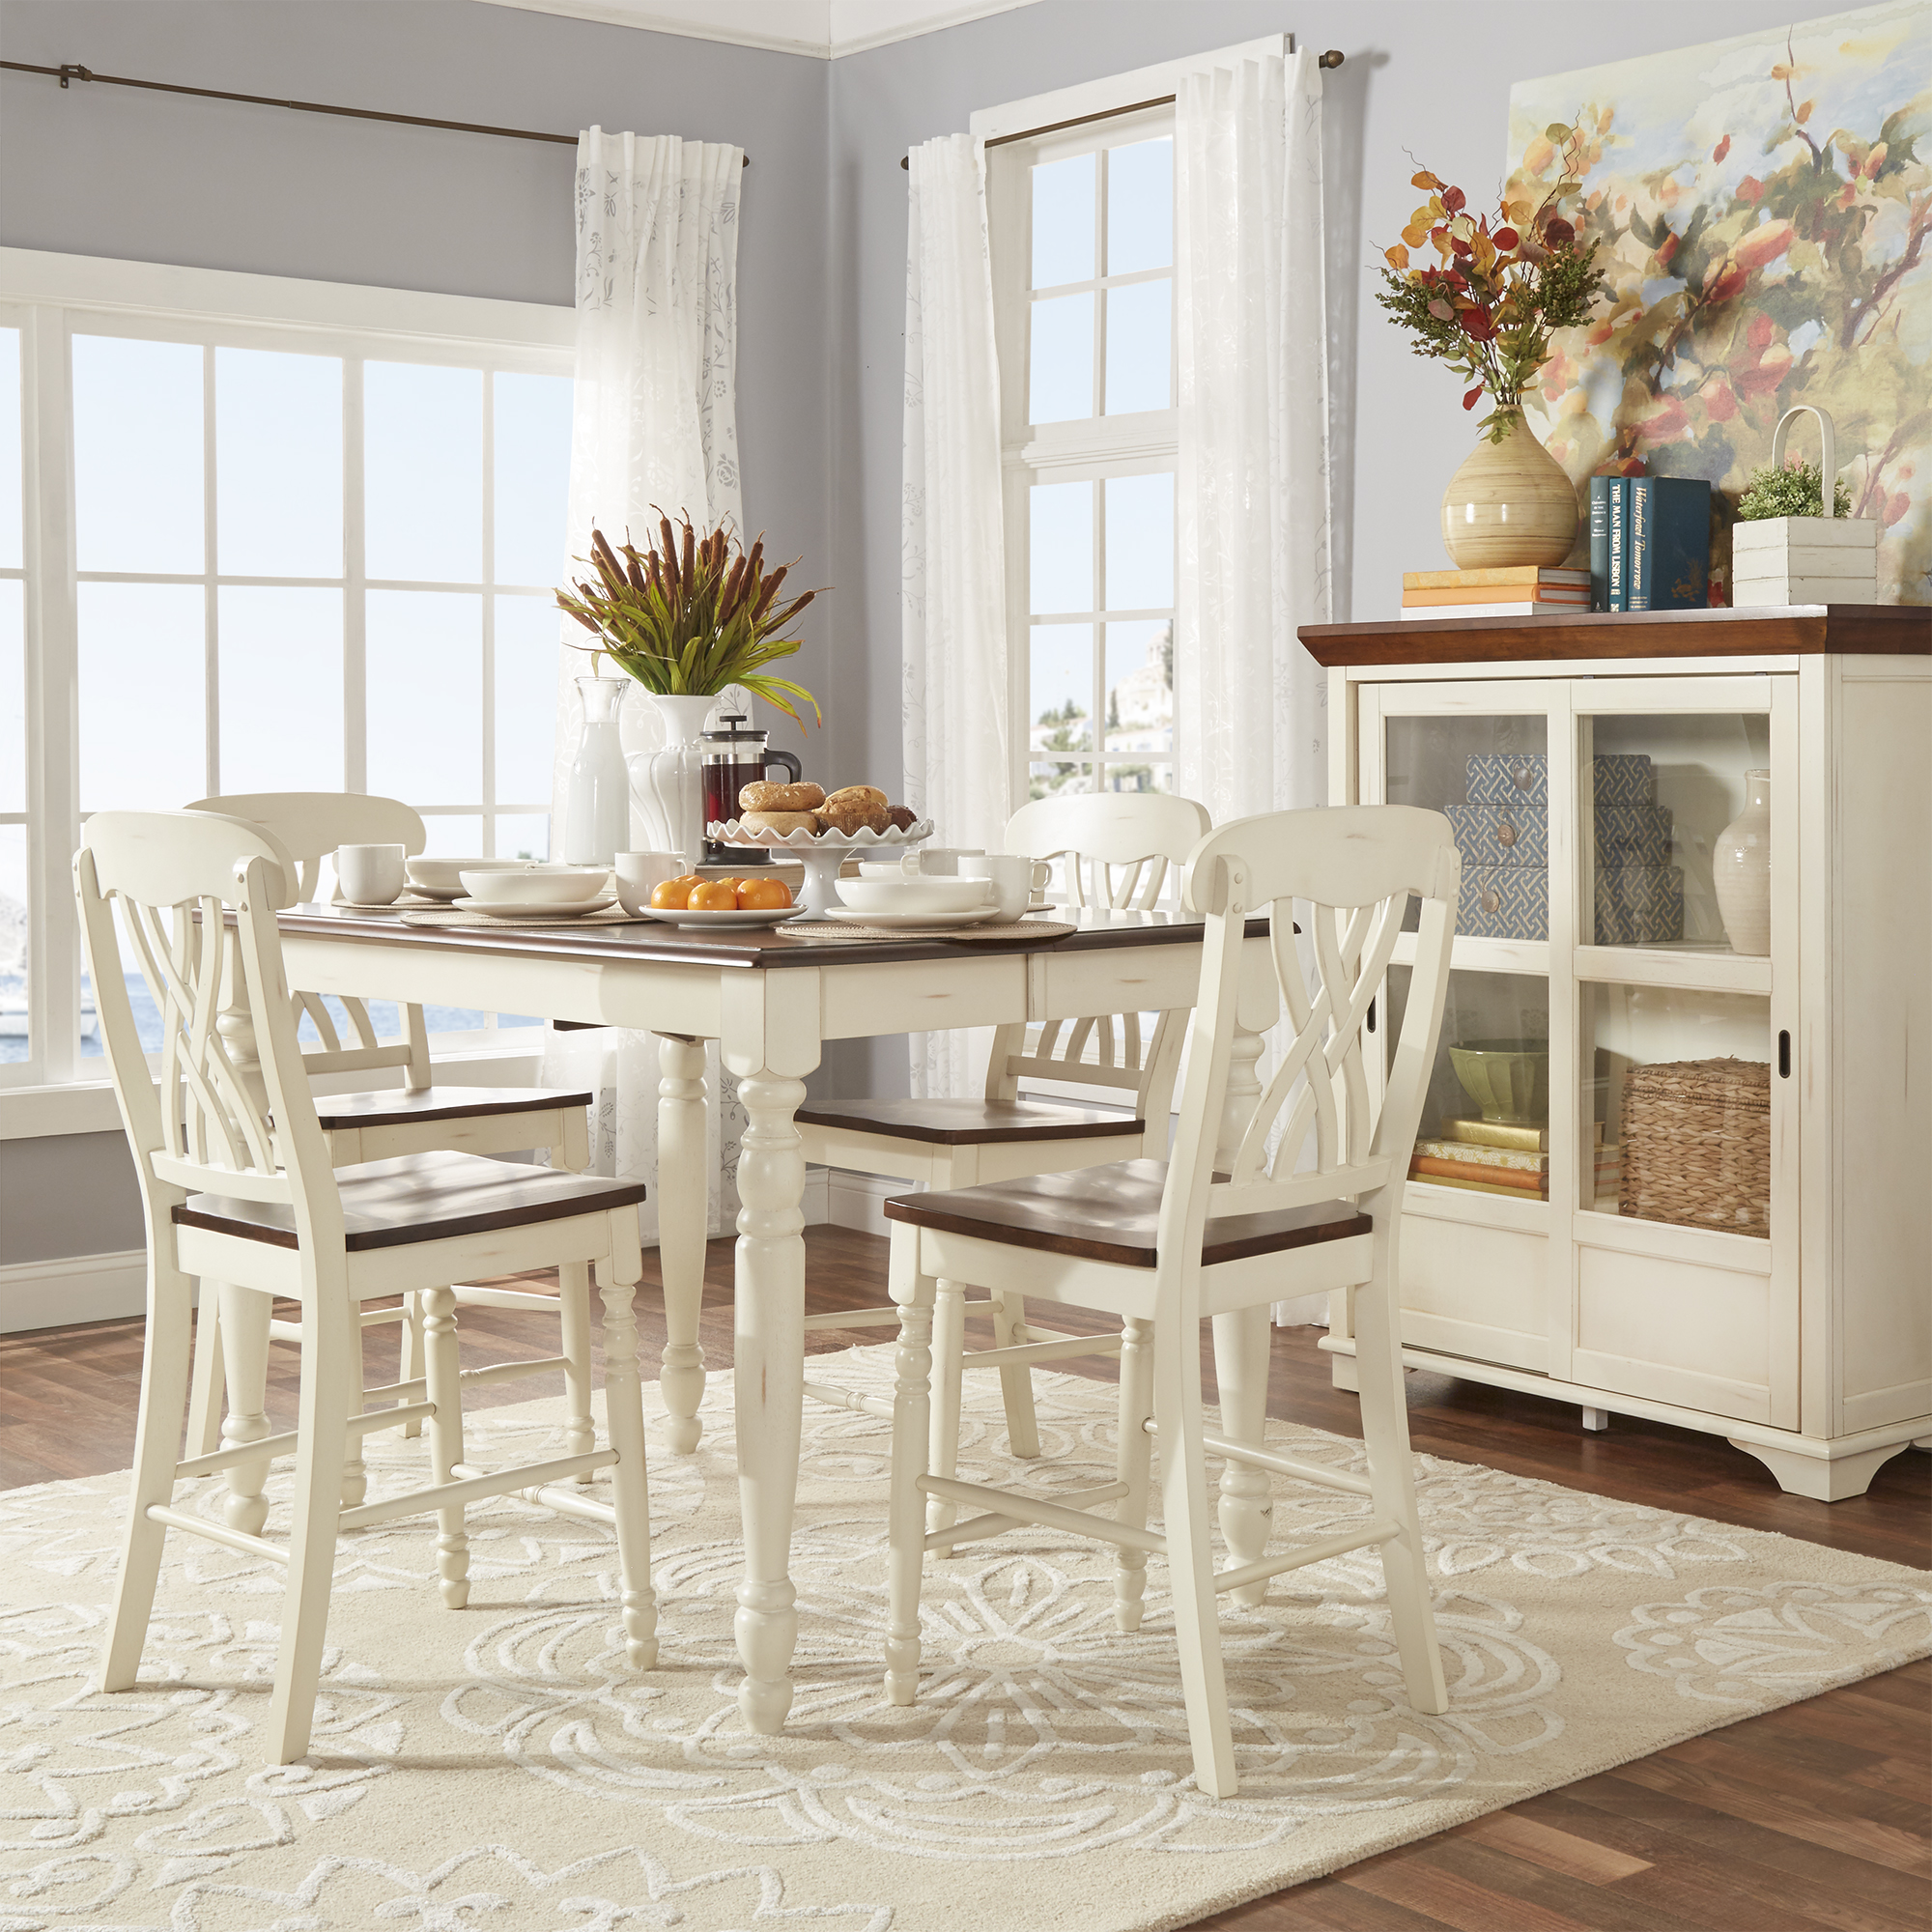 Weston Home Two Tone 5 Piece Counter Height Dining Set, Antique White